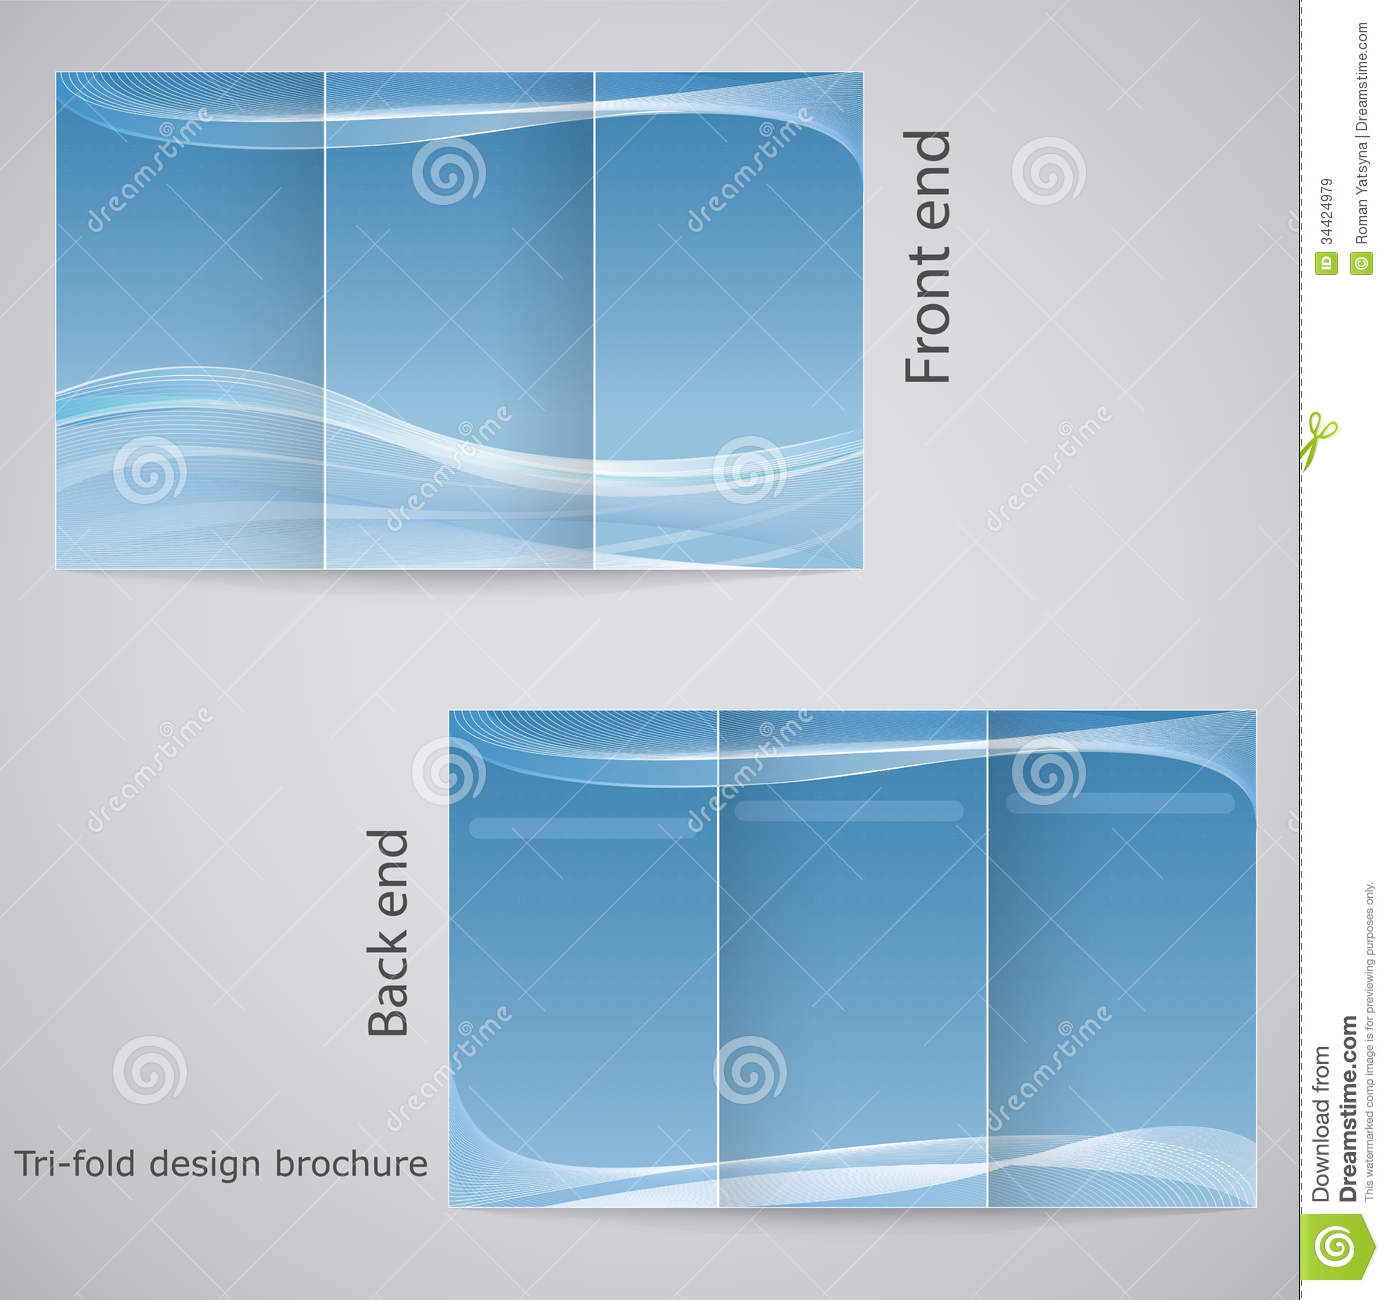 17 tri fold brochure design templates images tri fold for Tri fold brochure design templates